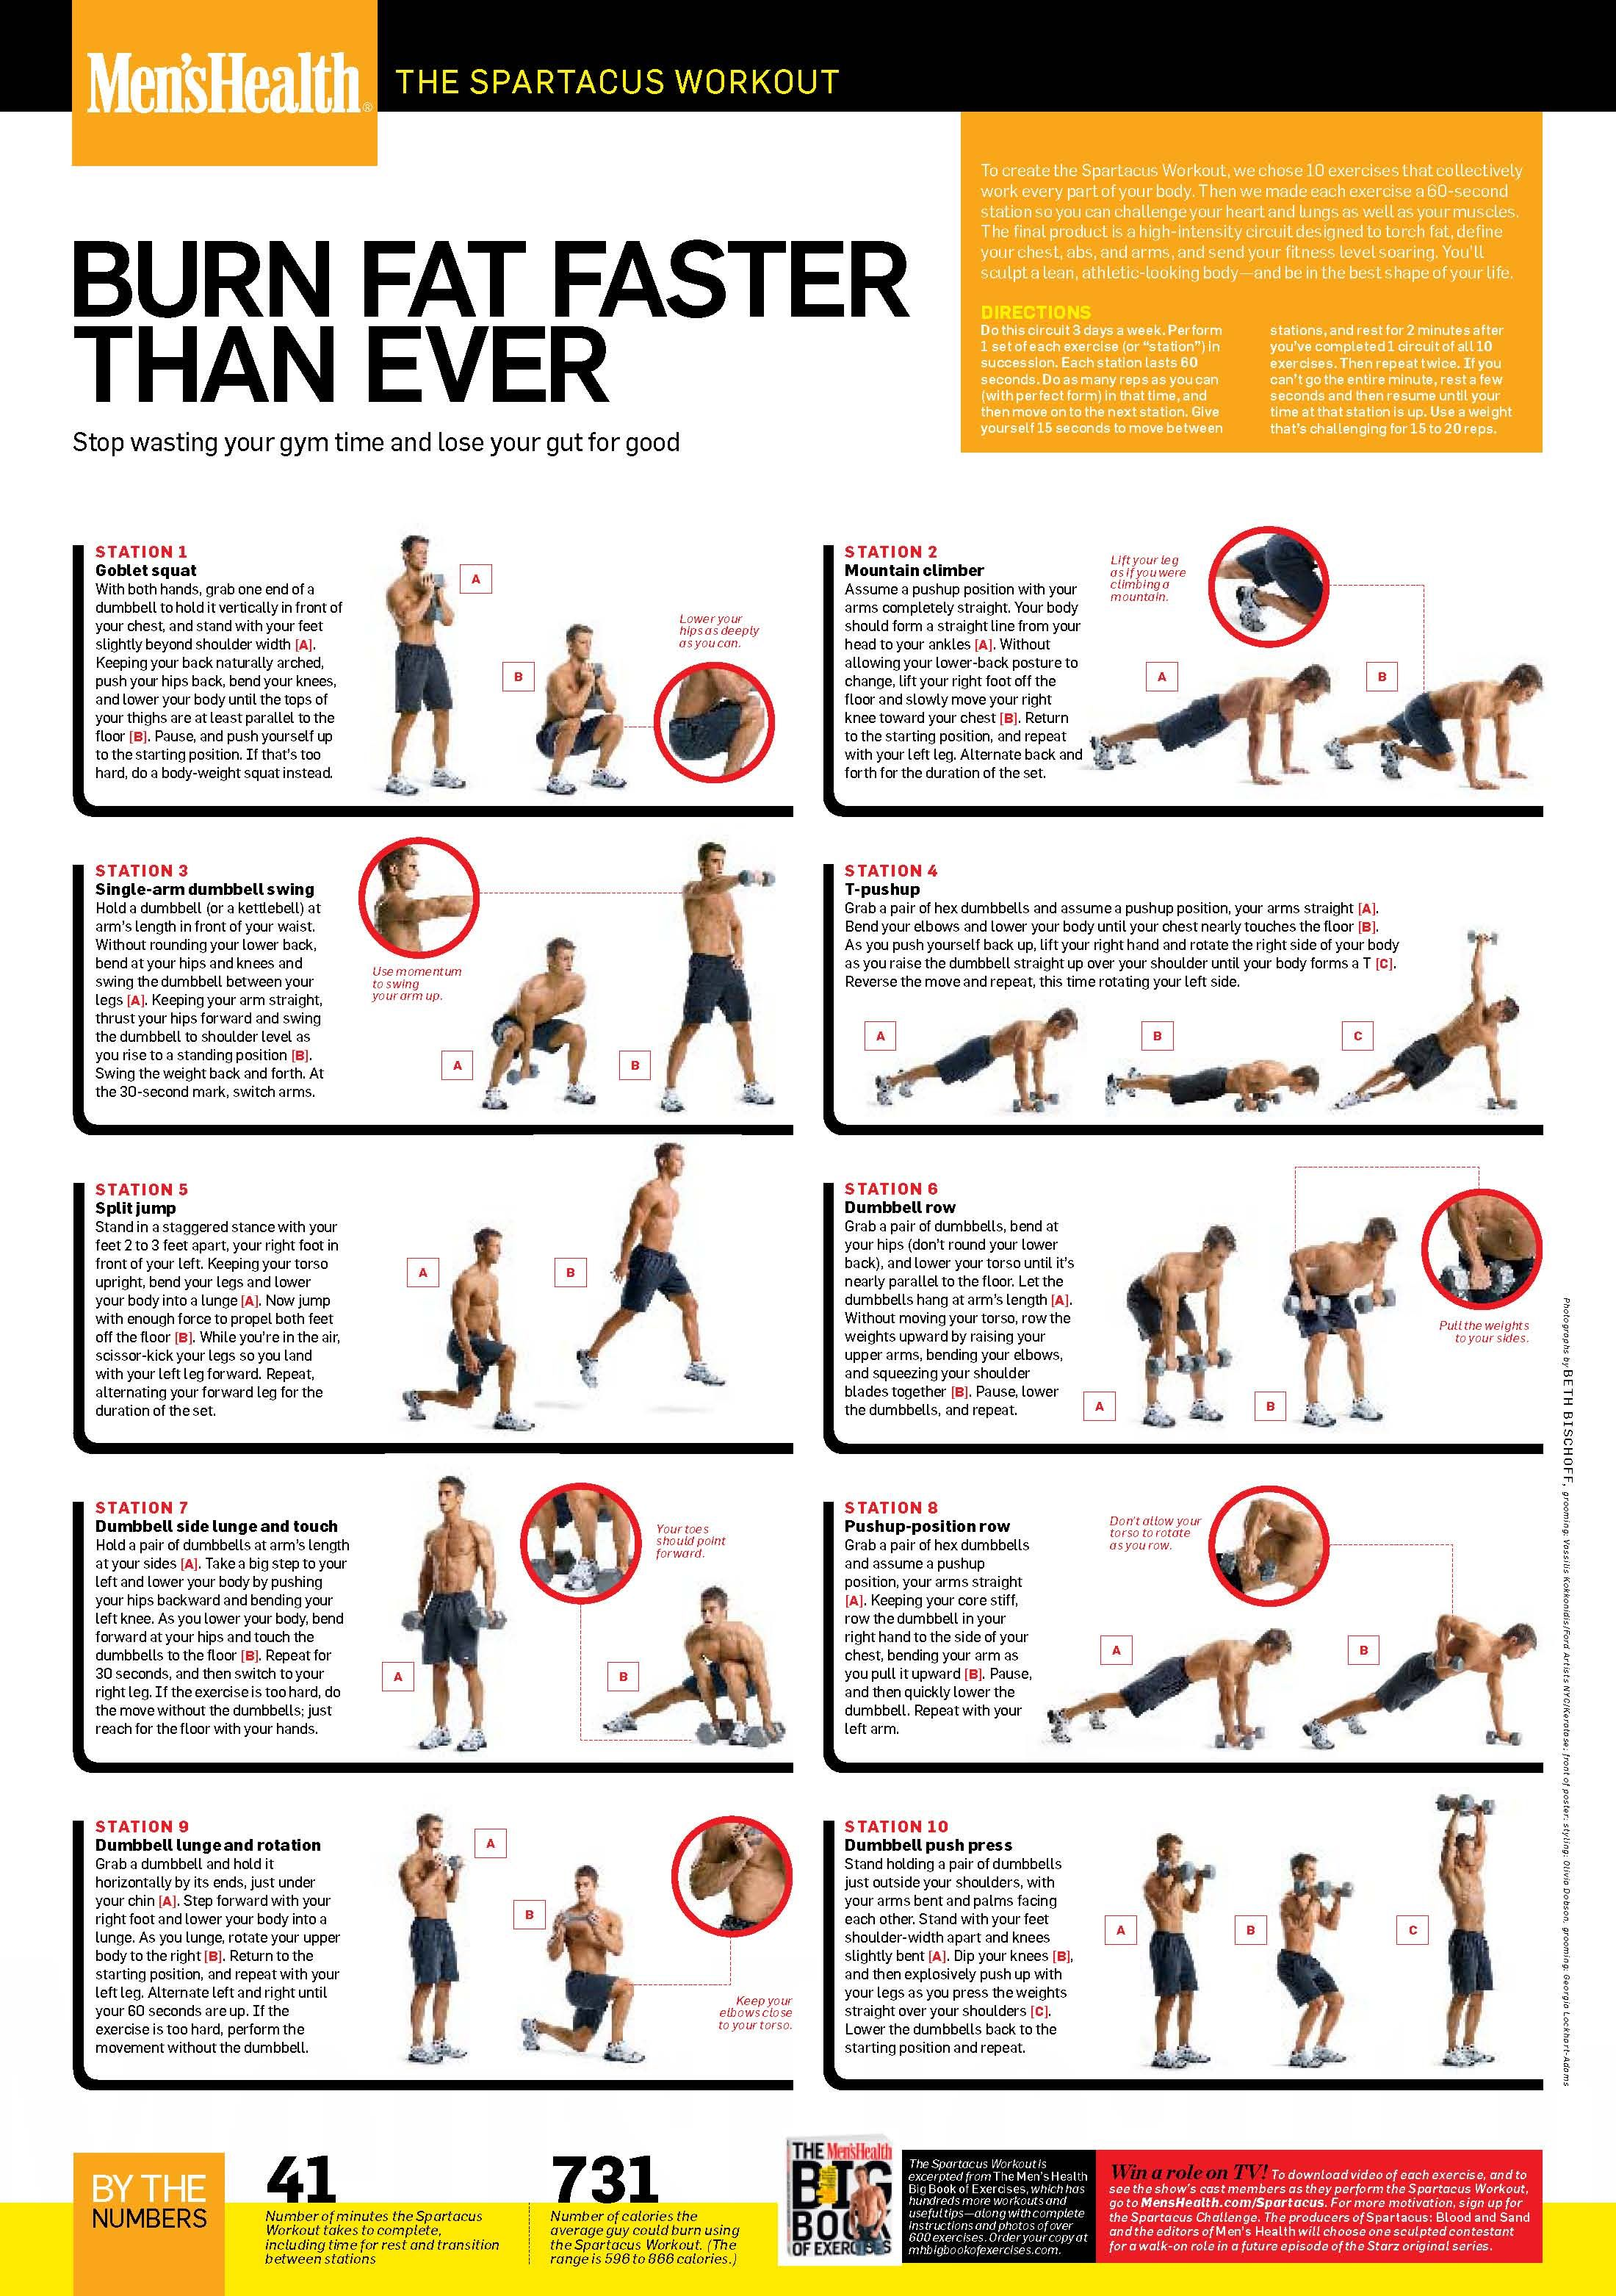 graphic about Spartacus Workout Printable identify Pin upon Physical fitness and Health and fitness